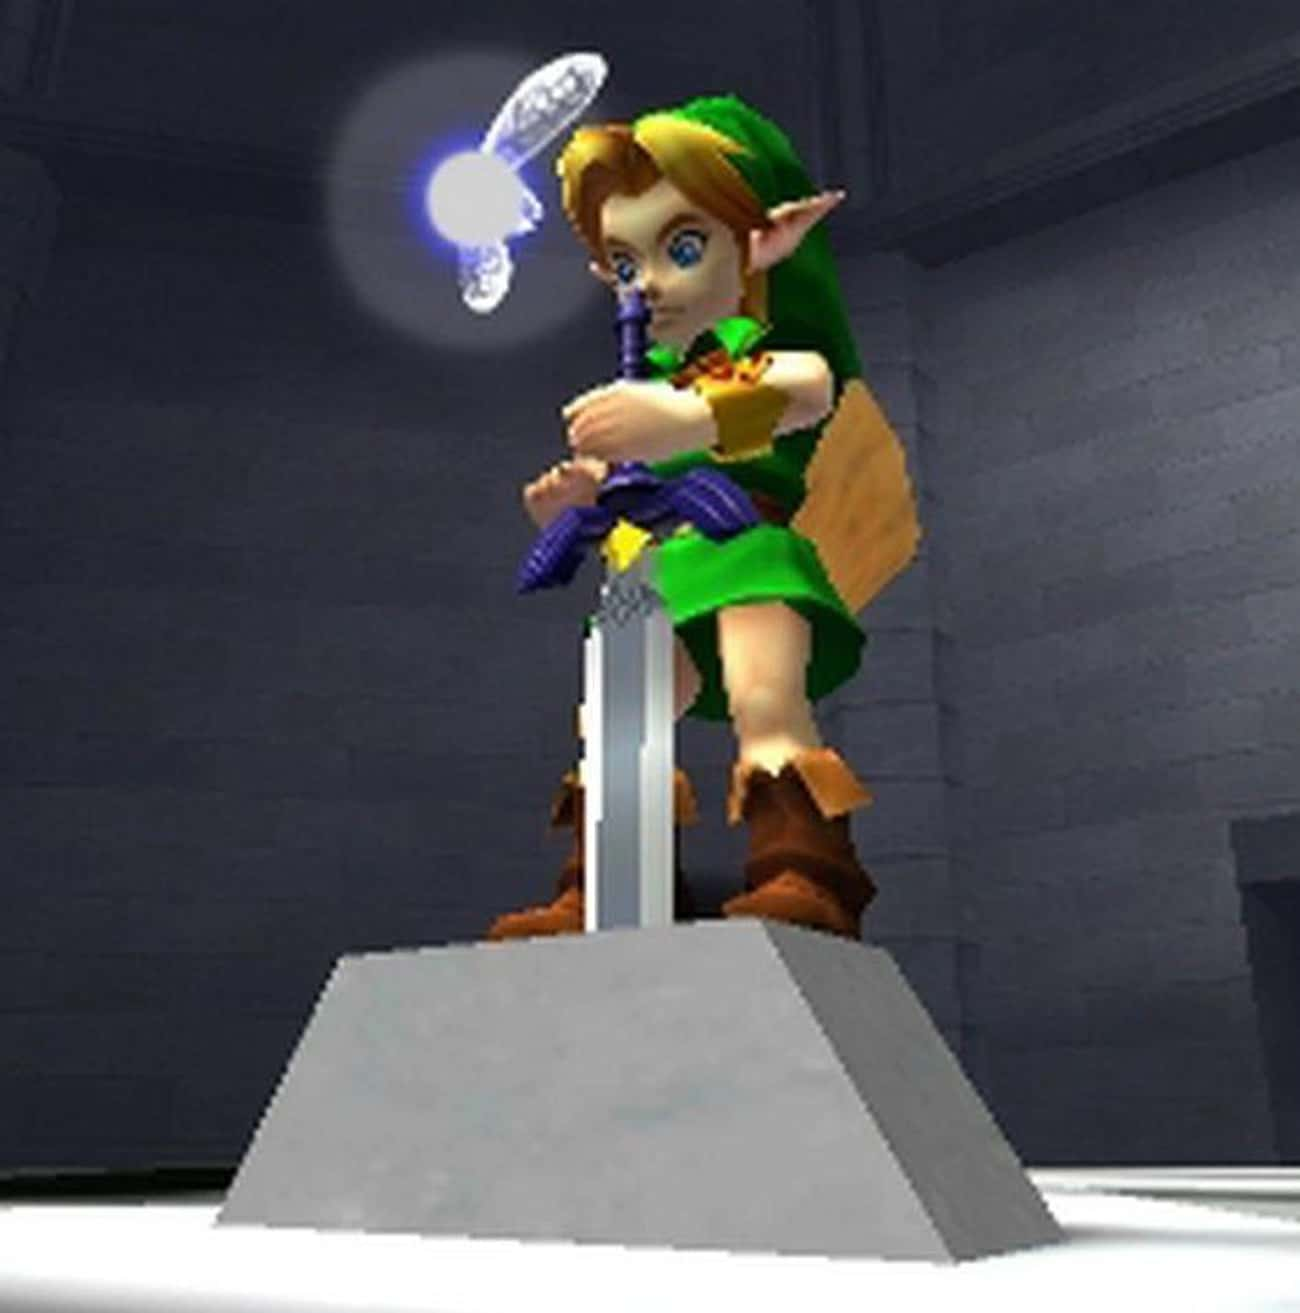 Navi Dies At The End Of Ocarina Of Time